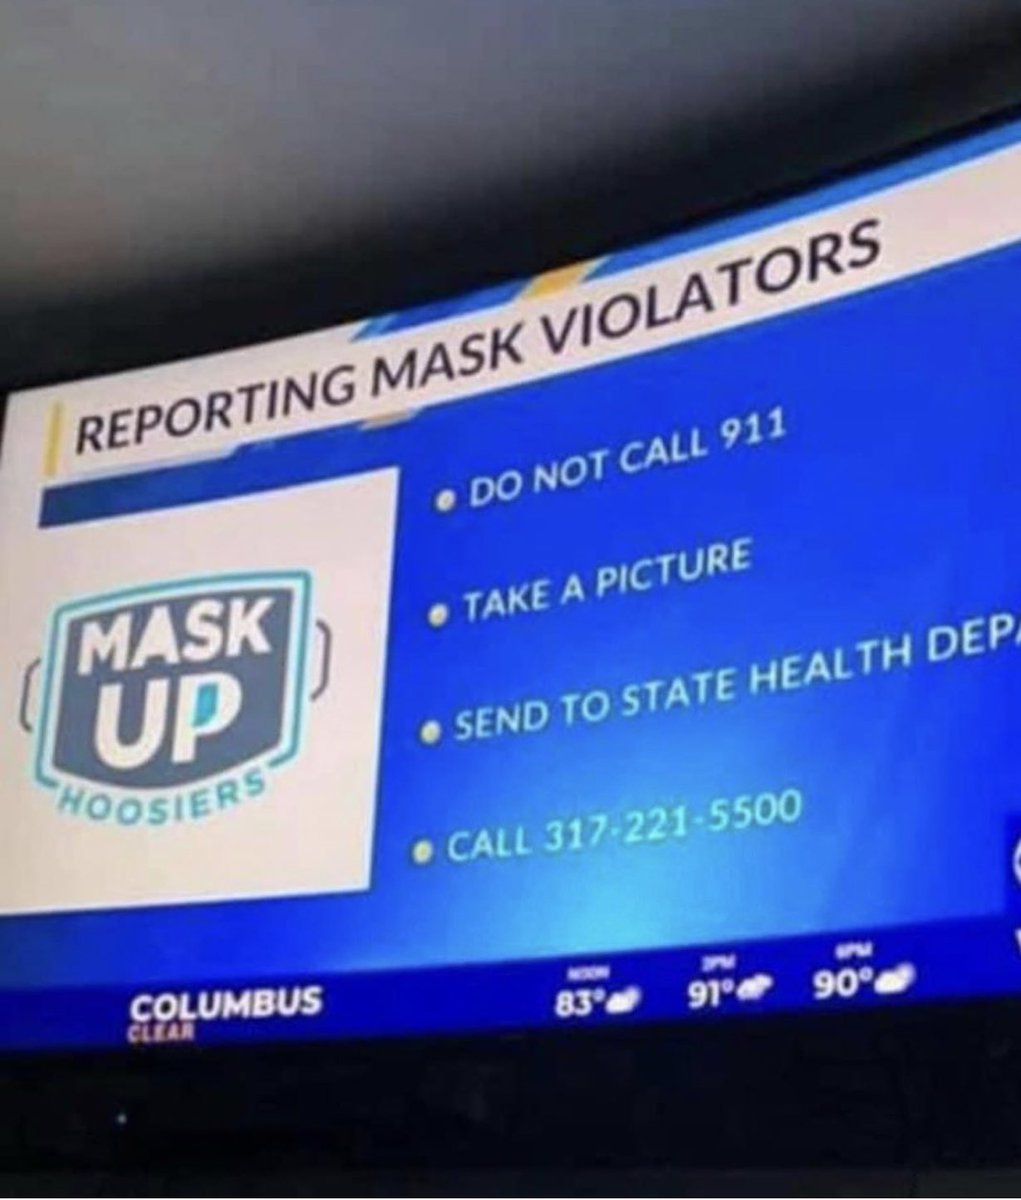 Reporting Mask Violators ?  This is getting ridiculous.  RT if you are not going to report someone for not wearing a mask.